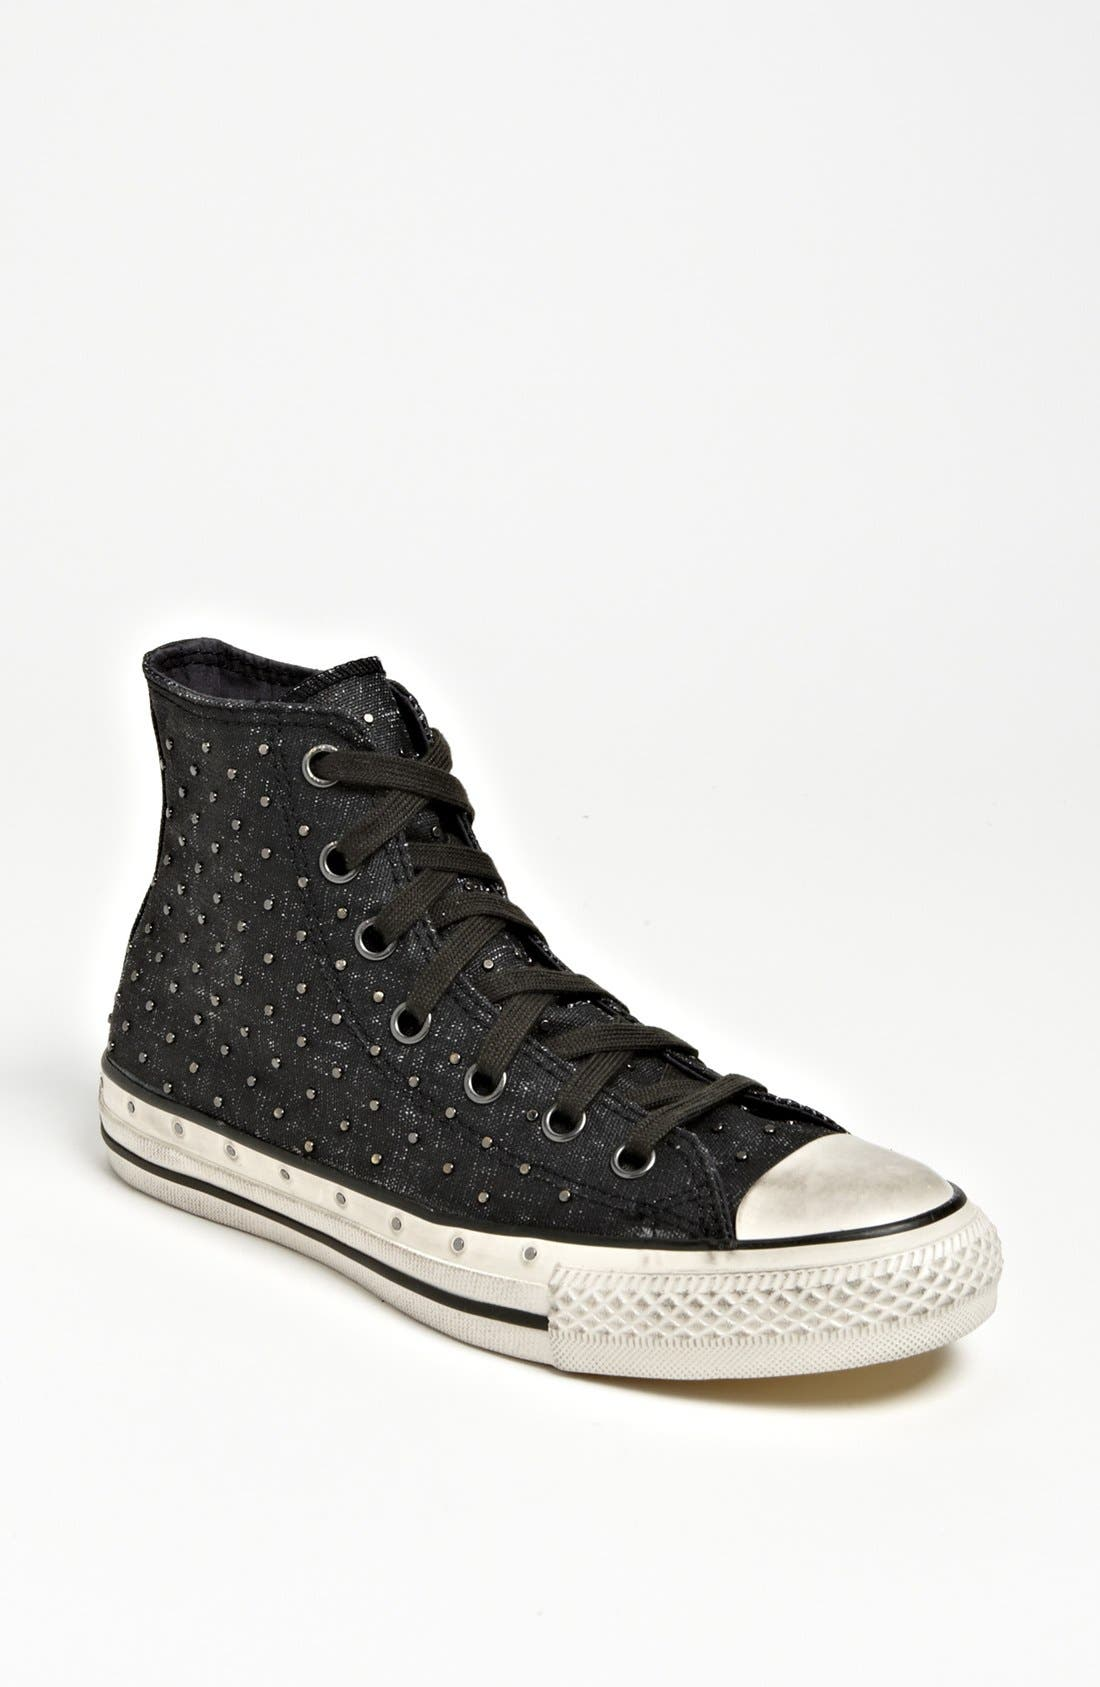 Alternate Image 1 Selected - Converse by John Varvatos 'All Star® Hi Studded' Sneaker (Women)